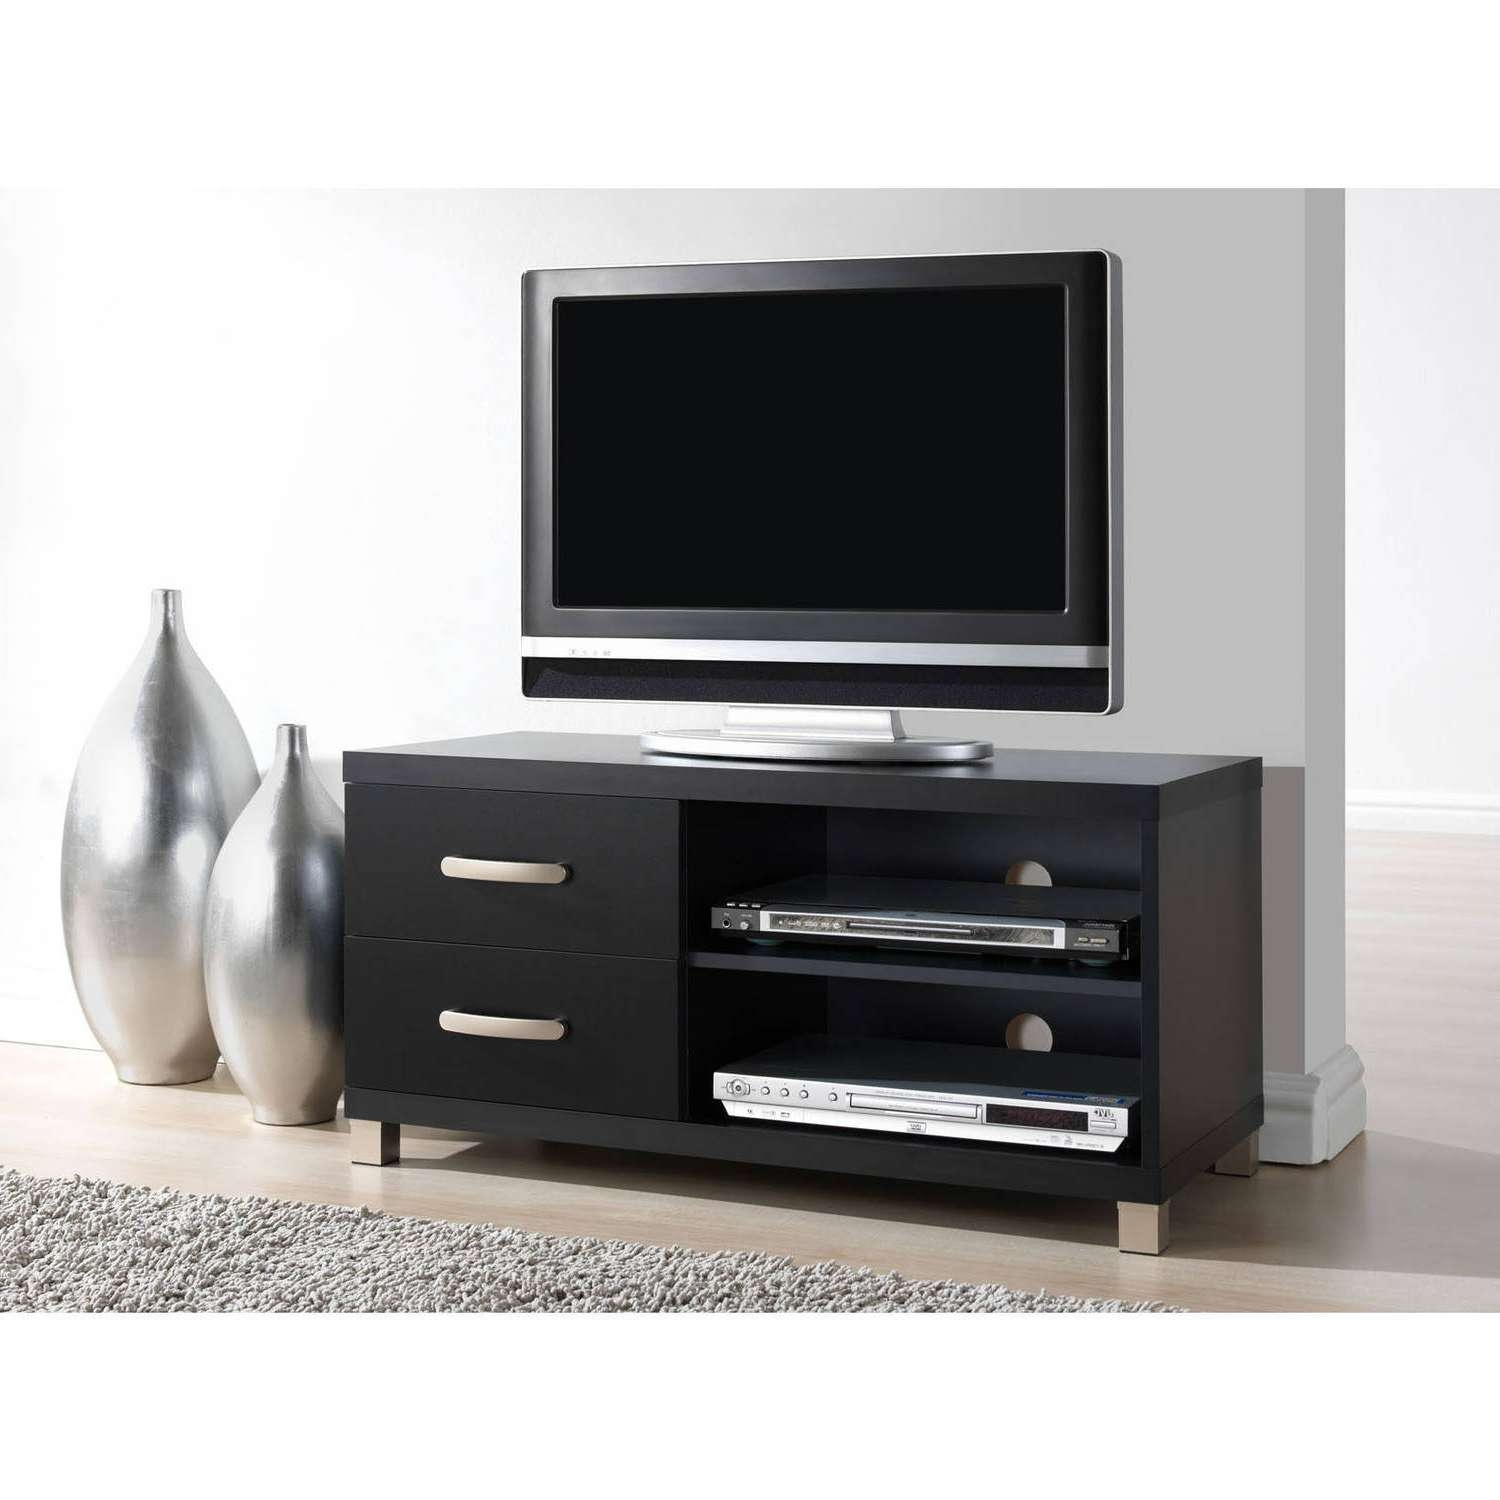 Techni Mobili 2 Drawer Tv Cabinet, Black – Walmart For Black Tv Cabinets With Drawers (View 15 of 20)